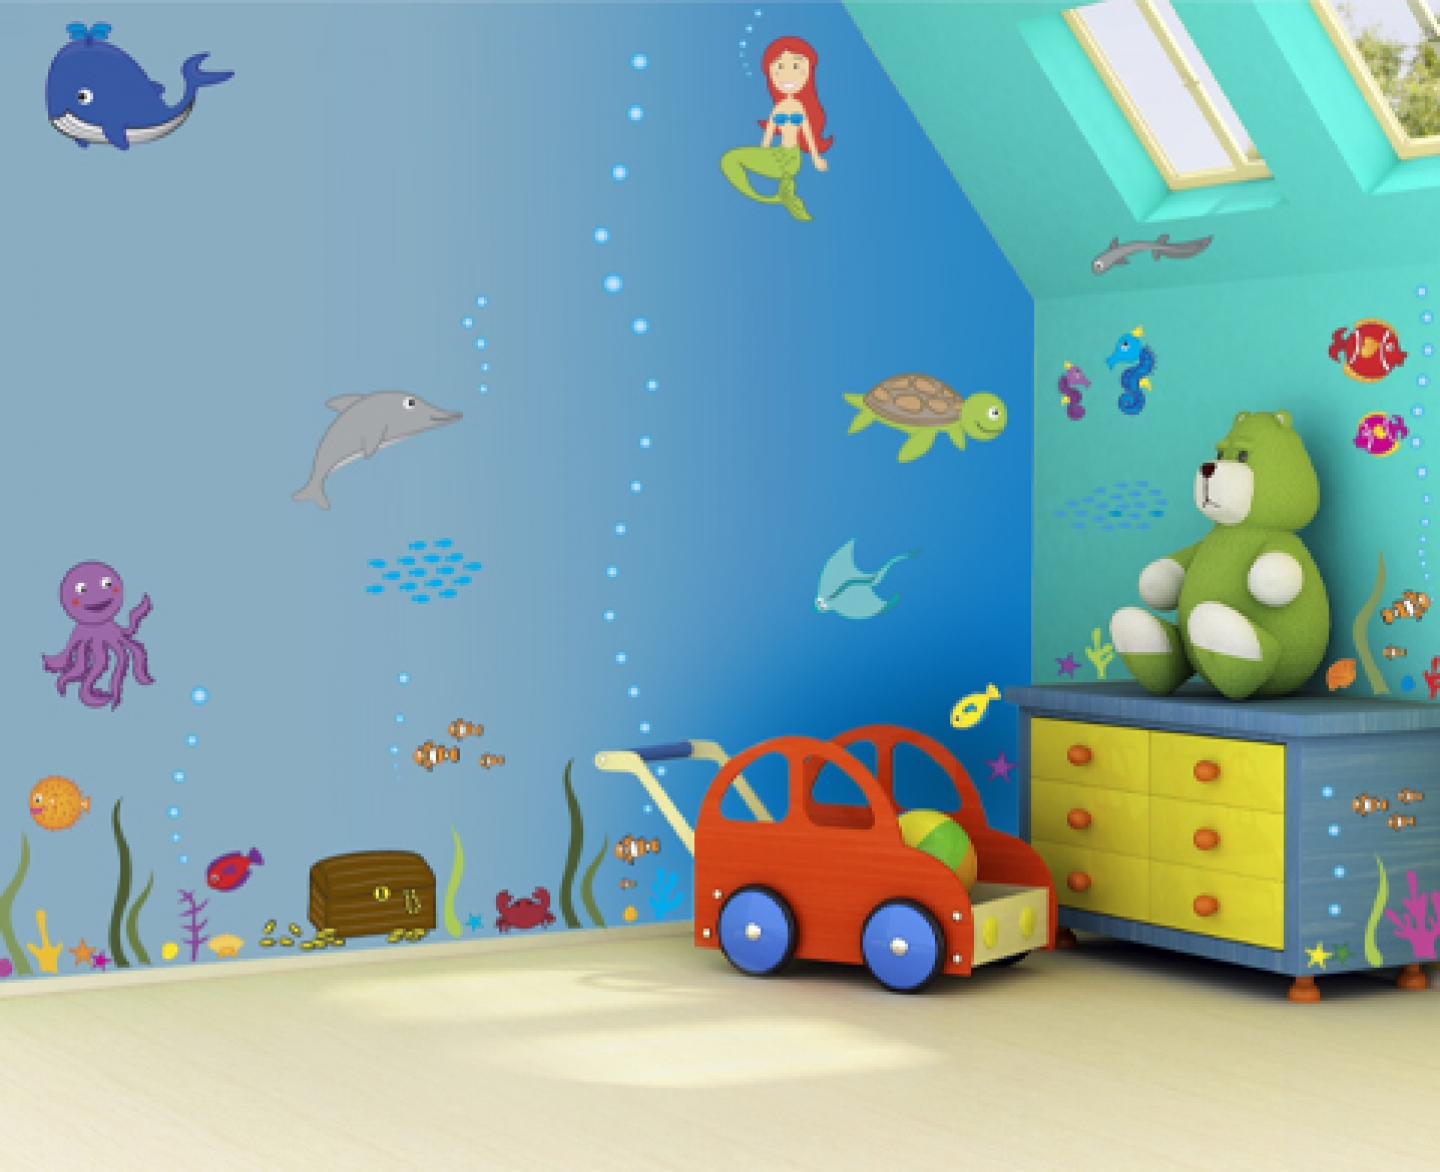 Wall Art D 233 Cor Ideas For Kids Room My Decorative